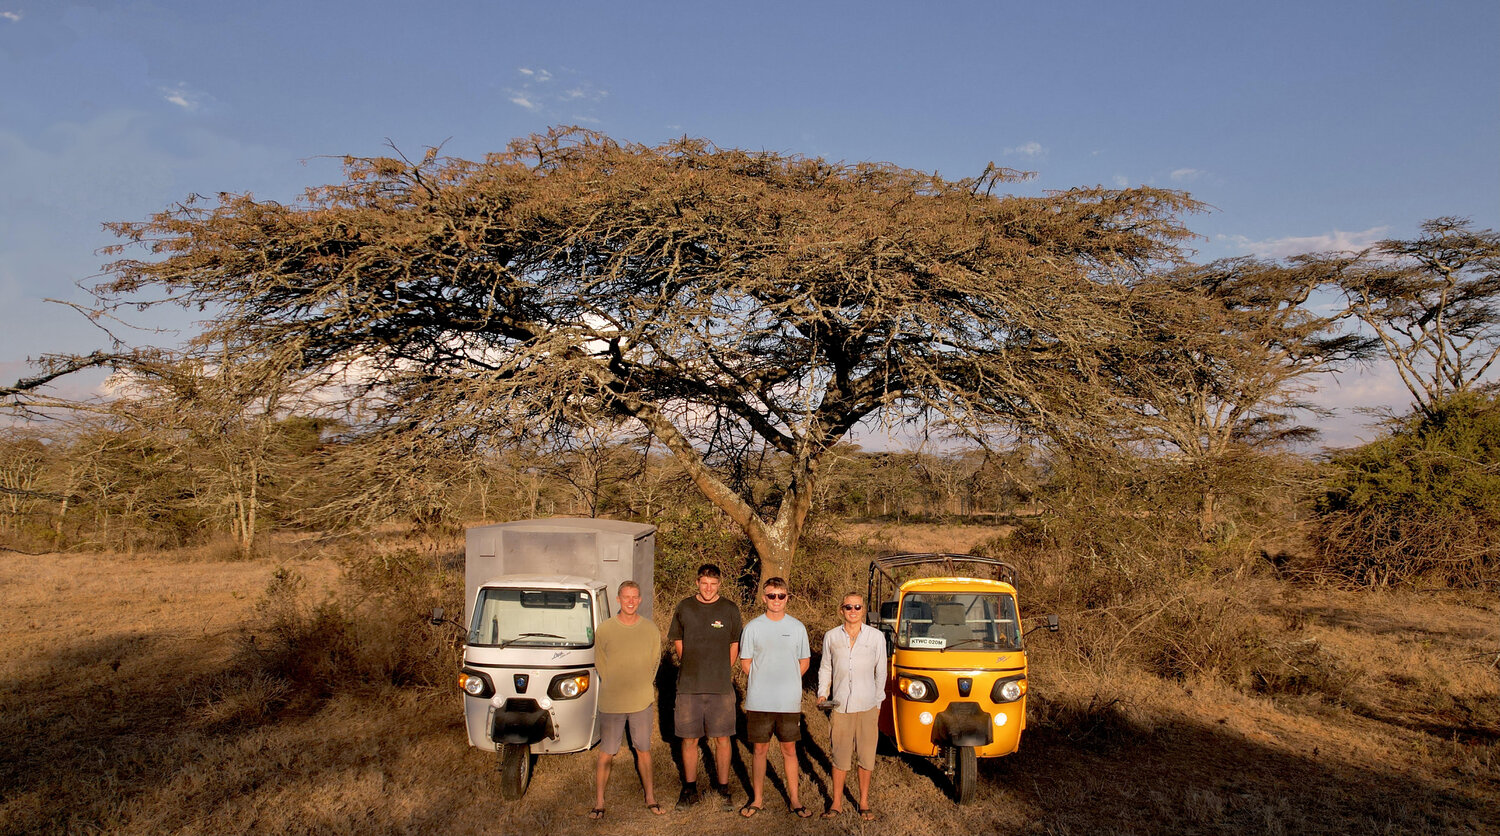 The #TukSouth Crew - The Tuk South crew are driving from Kenya to Cape Town raising money #ForRangers